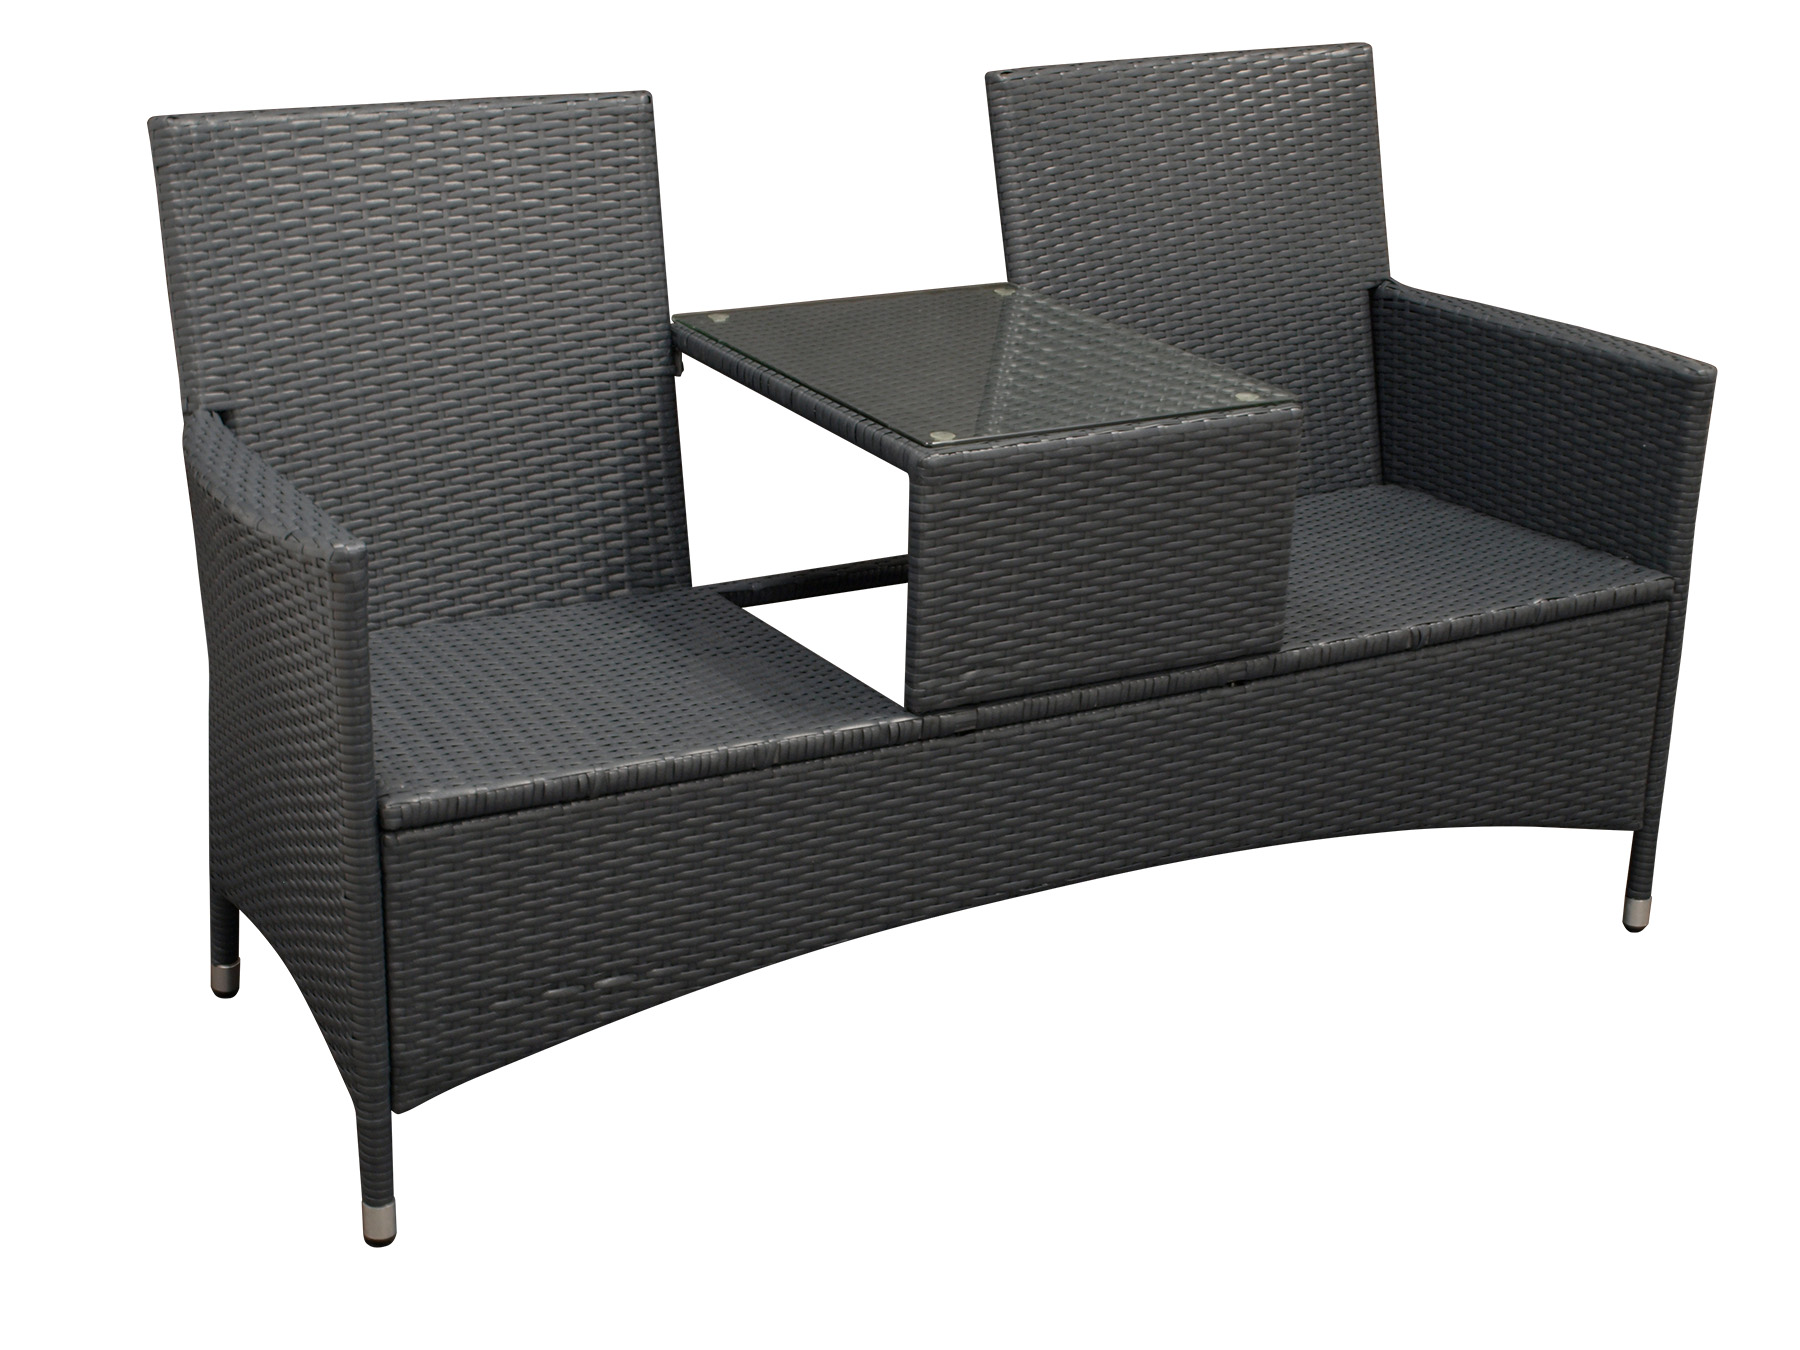 gartenbank rattanbank mit tisch gartenm bel bank san. Black Bedroom Furniture Sets. Home Design Ideas